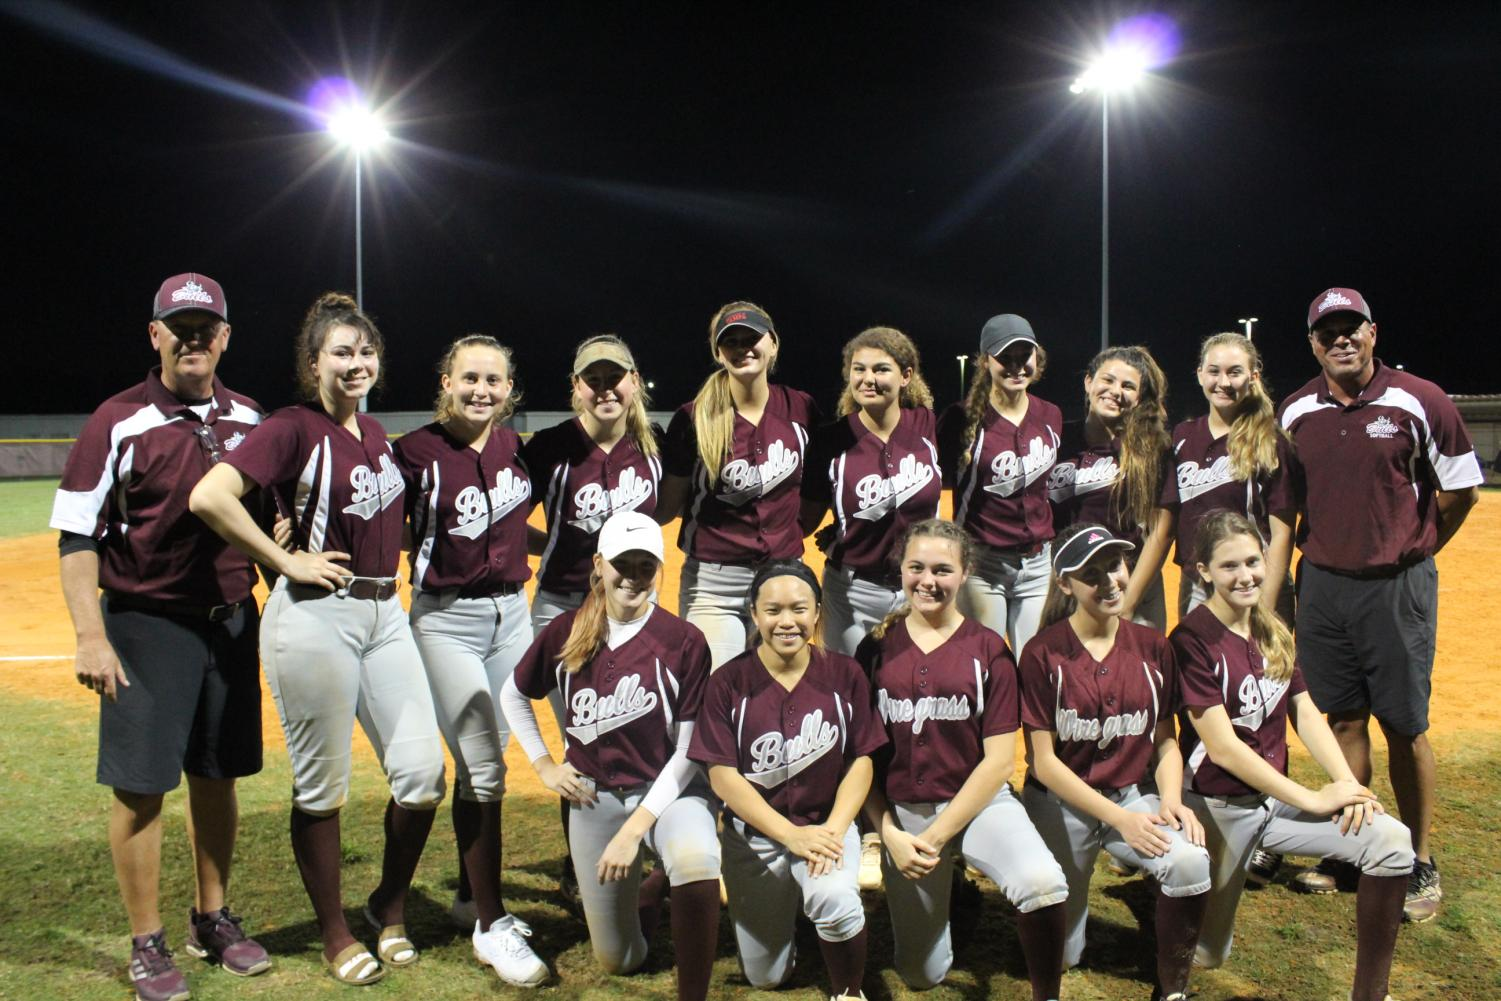 The Bulls 2019 softball team after their first win of the season.